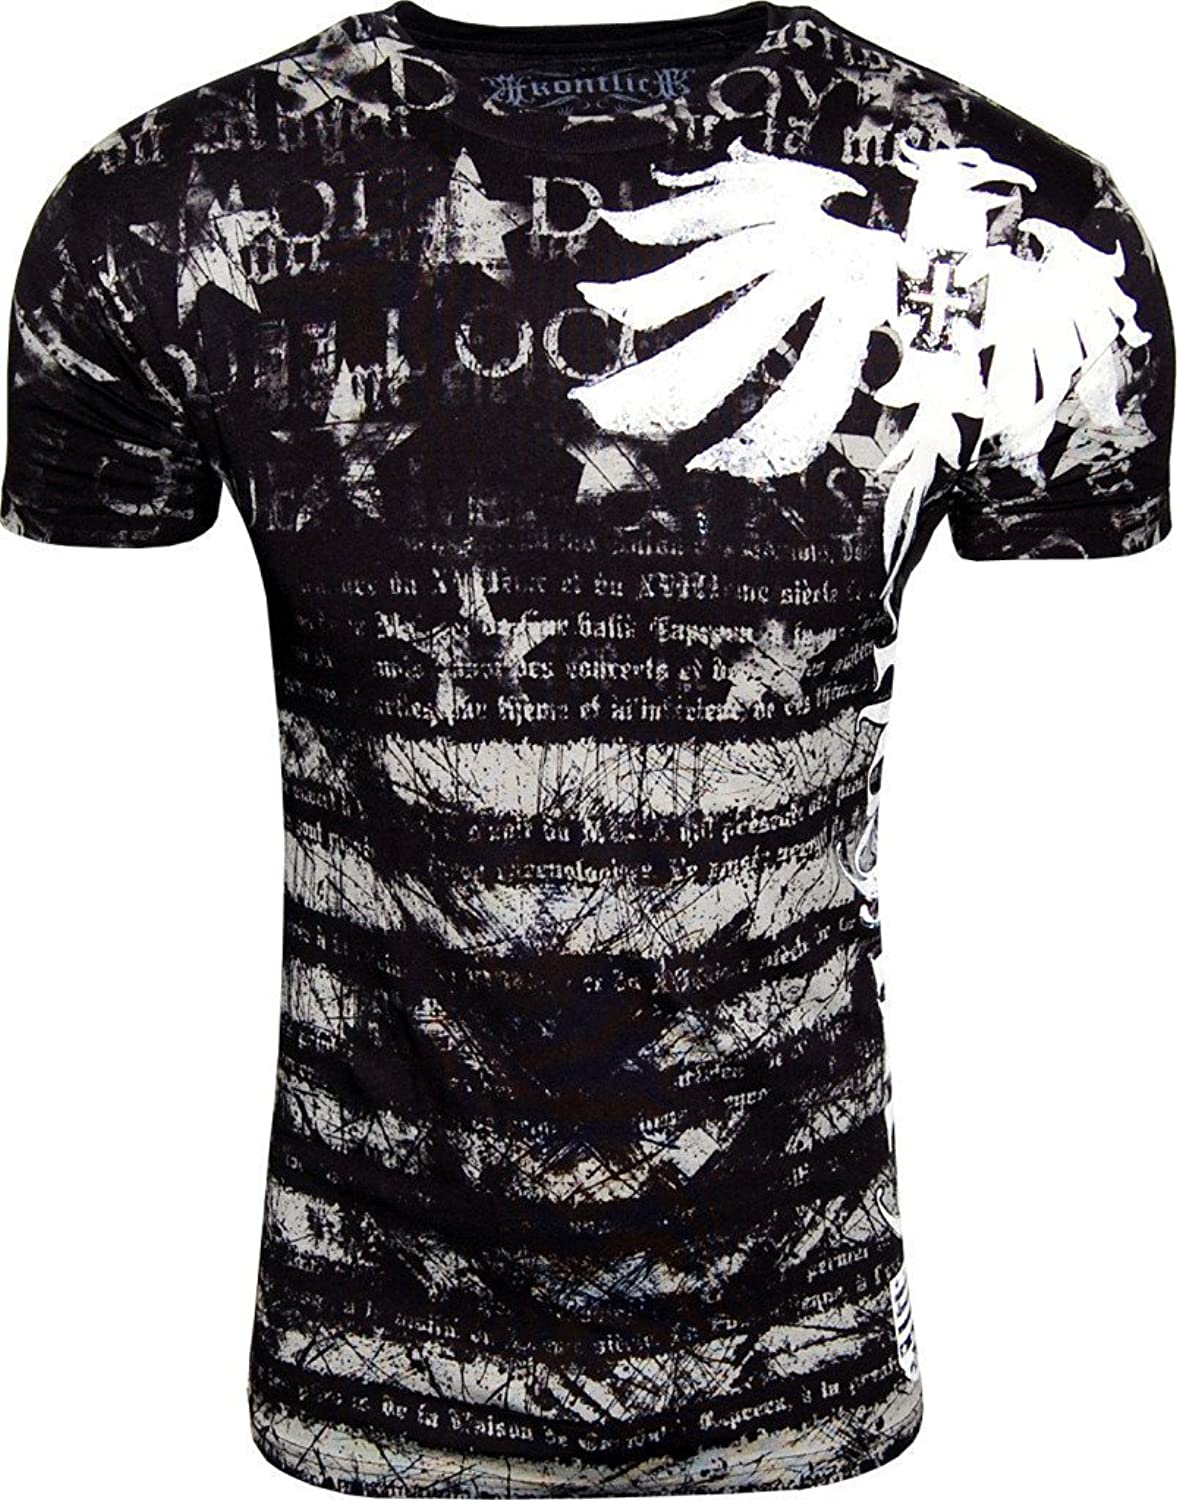 Konflic NWT Men's Royalty Graphic Designer MMA Muscle T-shirt